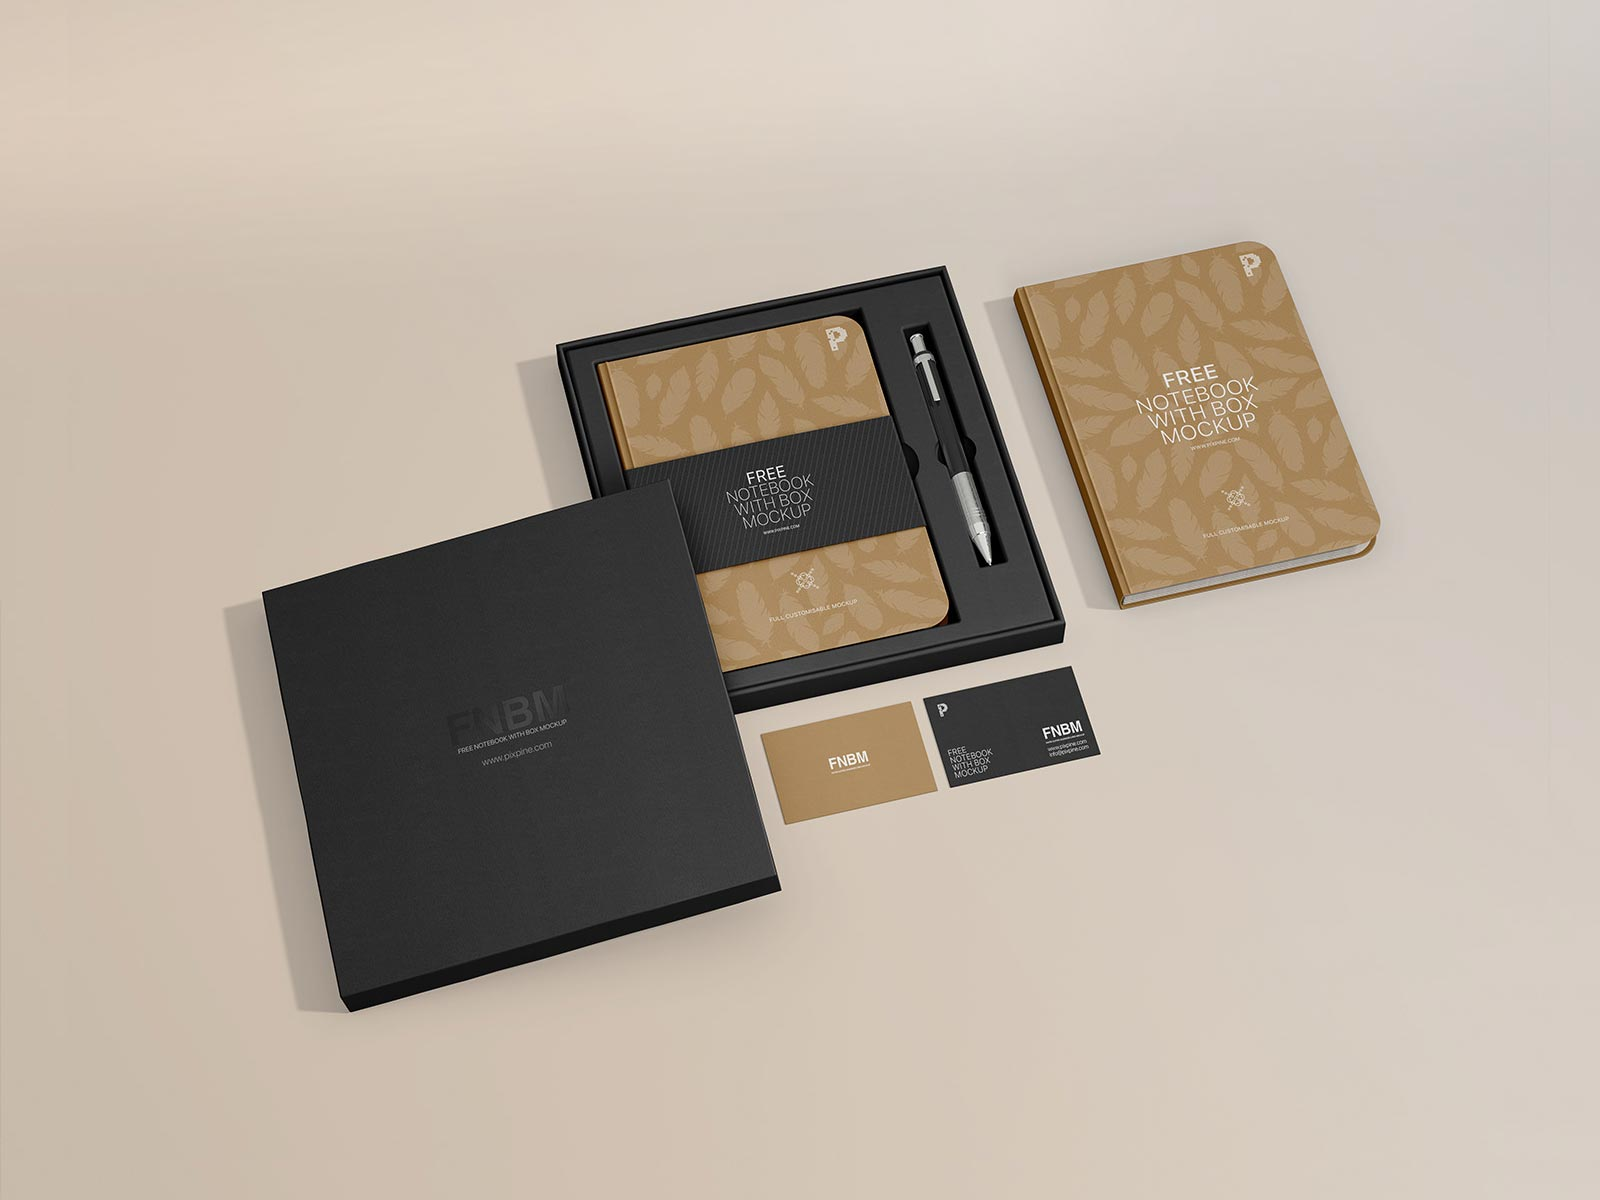 Free-Notebook-In-Box-Packaging-Mockup-PSD